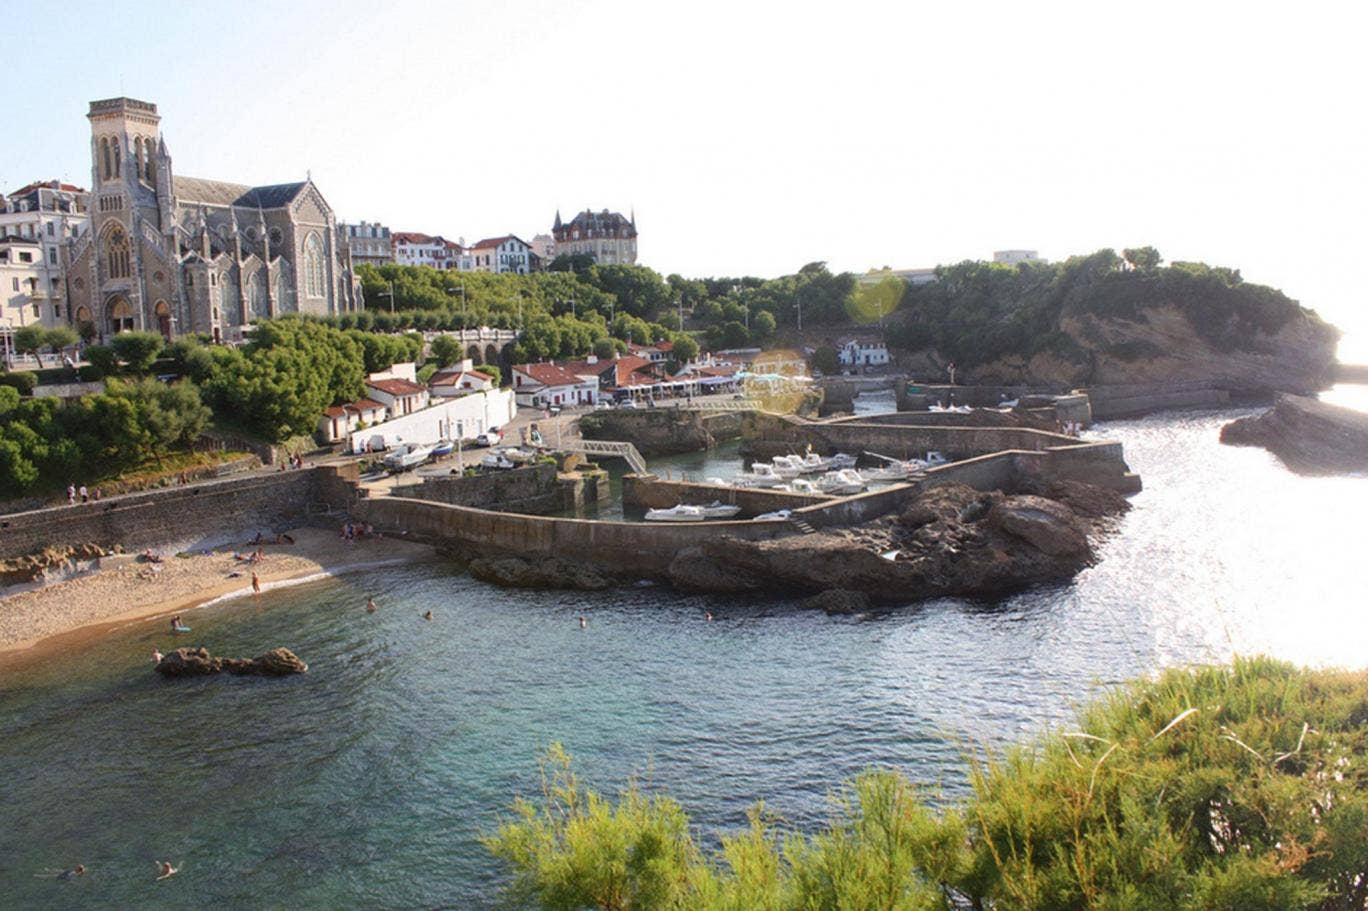 Famous for its surfing and swagger, Biarritz might have once been seen as the playground for the rich, but the French coastal town is proving popular with water sports enthusiasts and is the home to many cultural and music related events. The main beach c